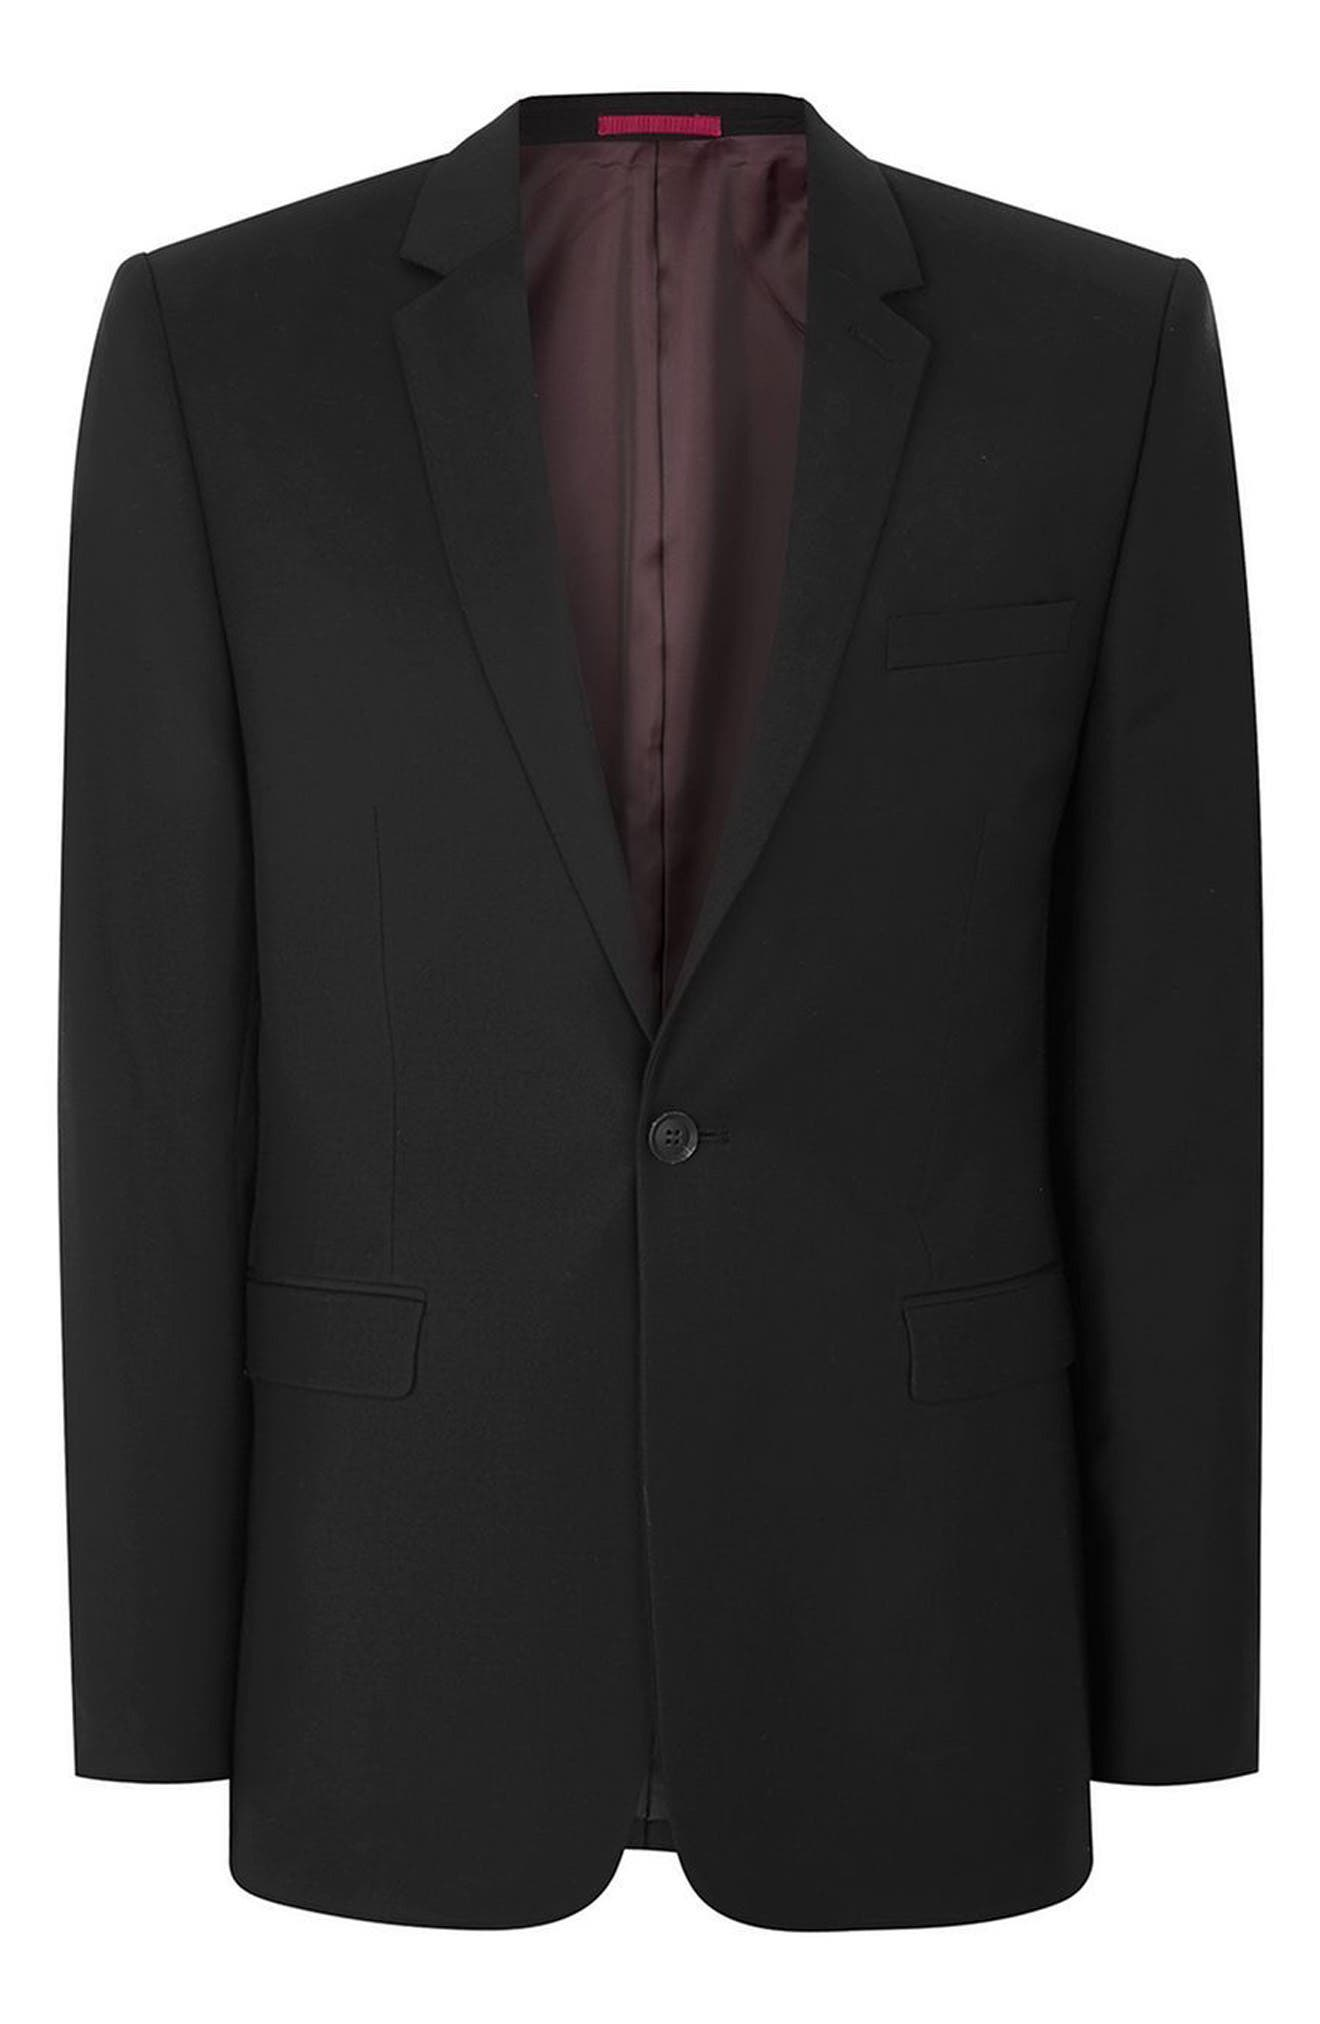 TOPMAN, Skinny Fit One-Button Suit Jacket, Alternate thumbnail 5, color, BLACK